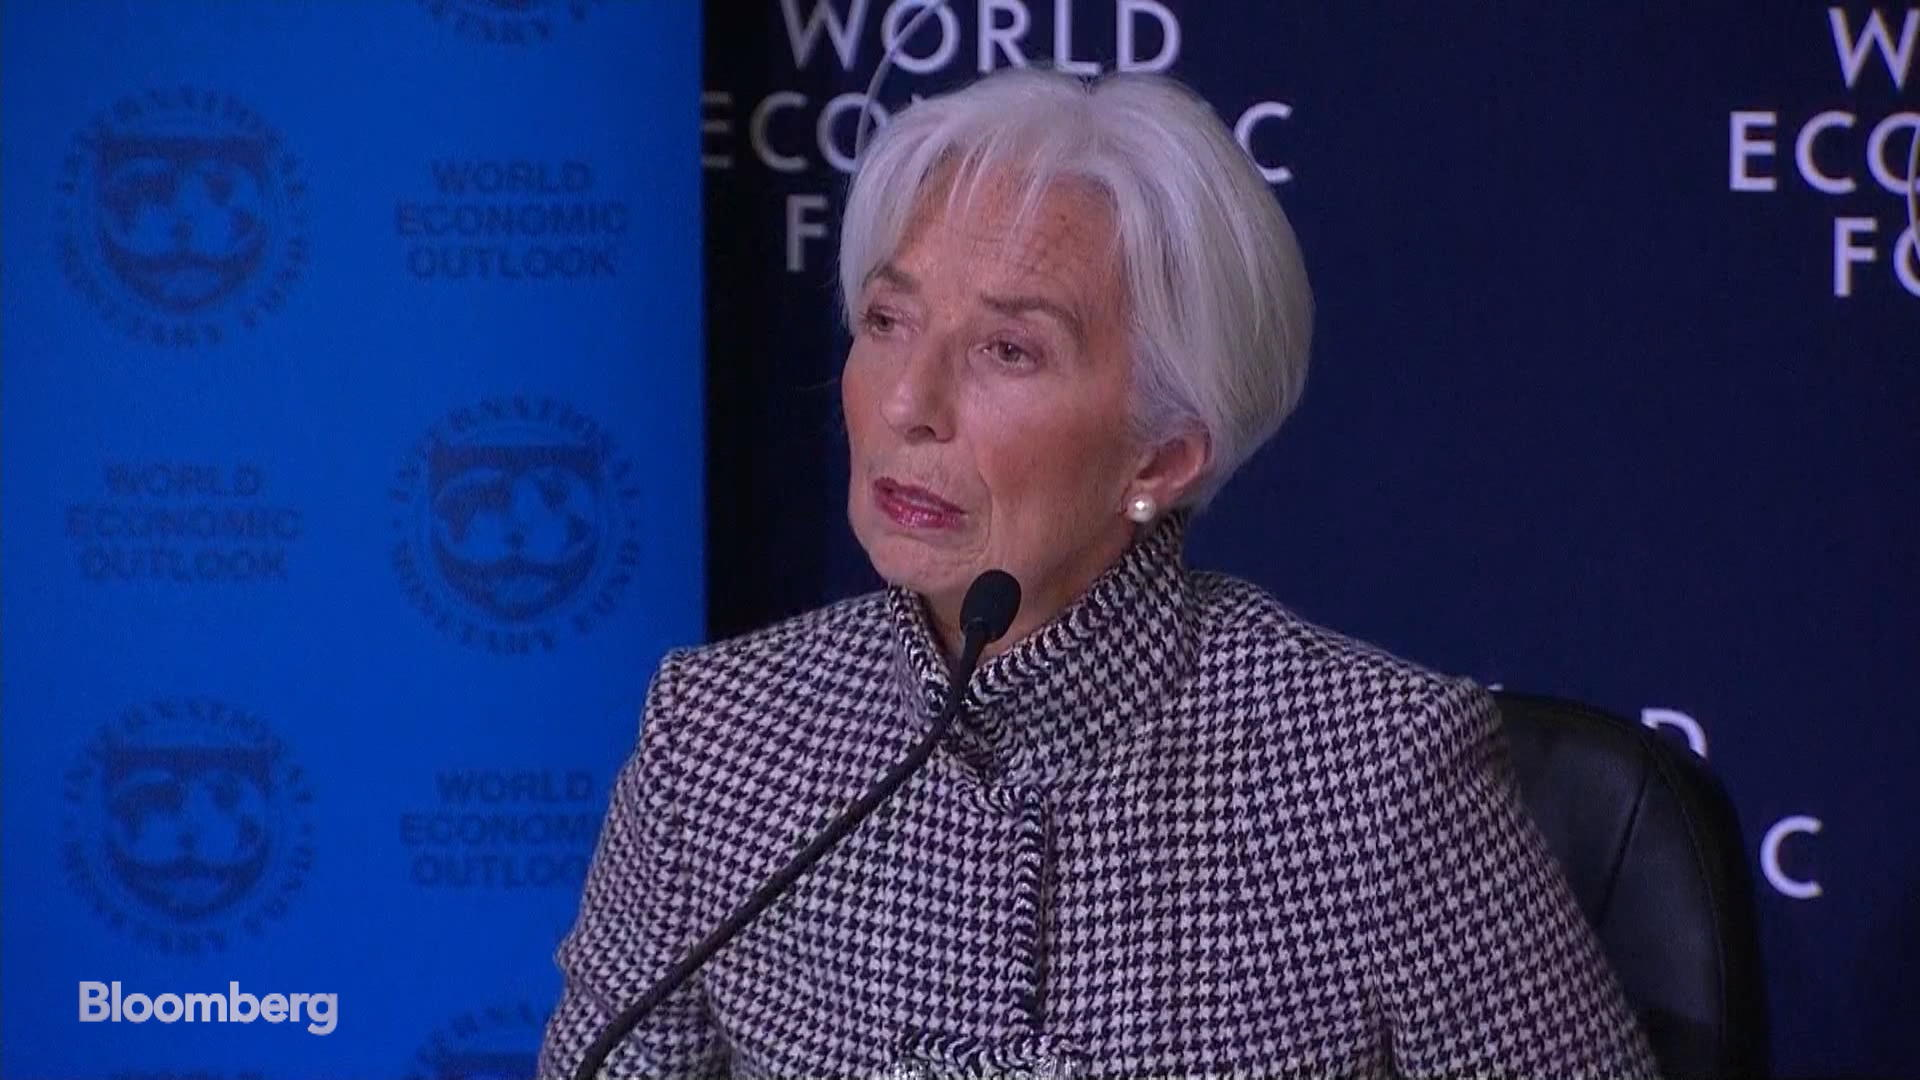 IMF's Lagarde Says Economy Faces `Significantly Higher Risks'